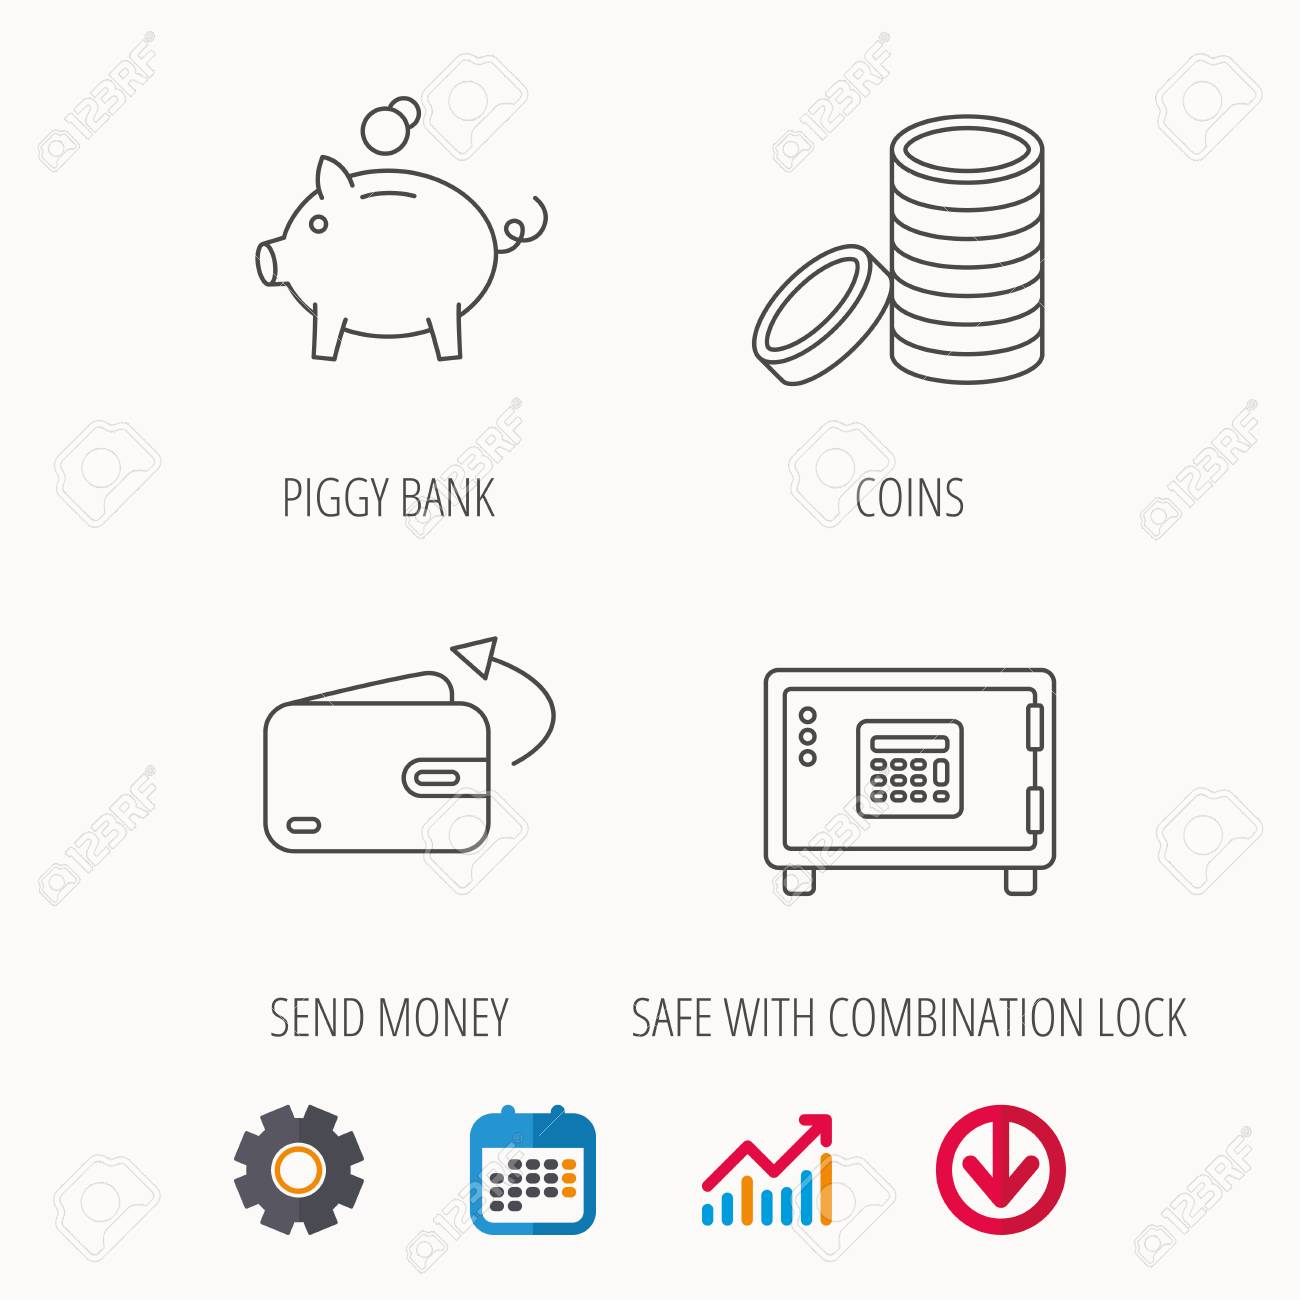 Diagram Of A Safety Box Trusted Wiring 2001 Chevrolet S 10 2200 Fuse Piggy Bank Cash Money And Wallet Icons Safe Send Linear 98 Chevy S10